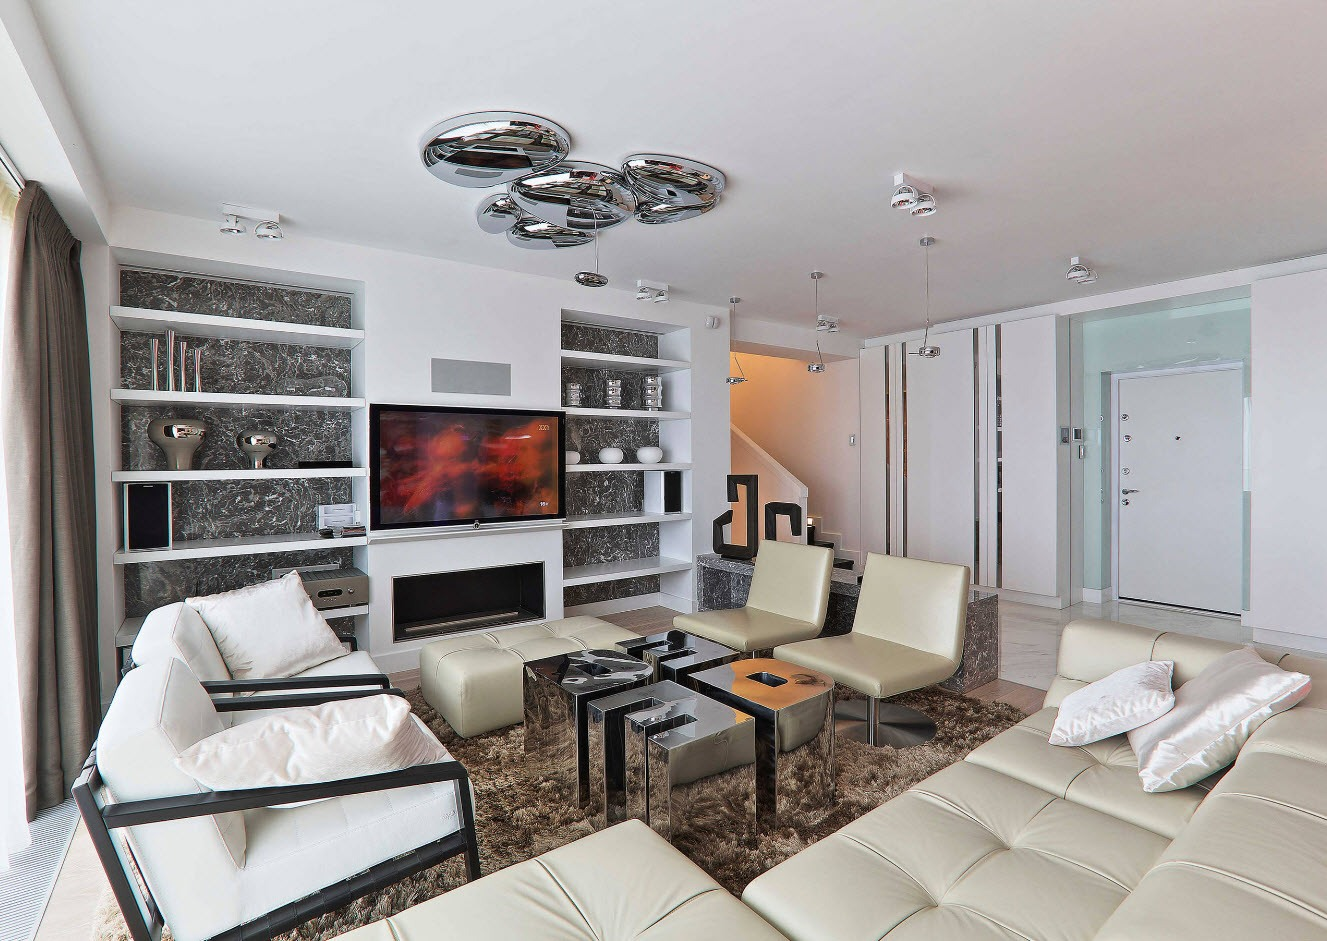 White Living Room: Different Style Interiors with Photos. Silver lamps and built-in shelves at the accent wall